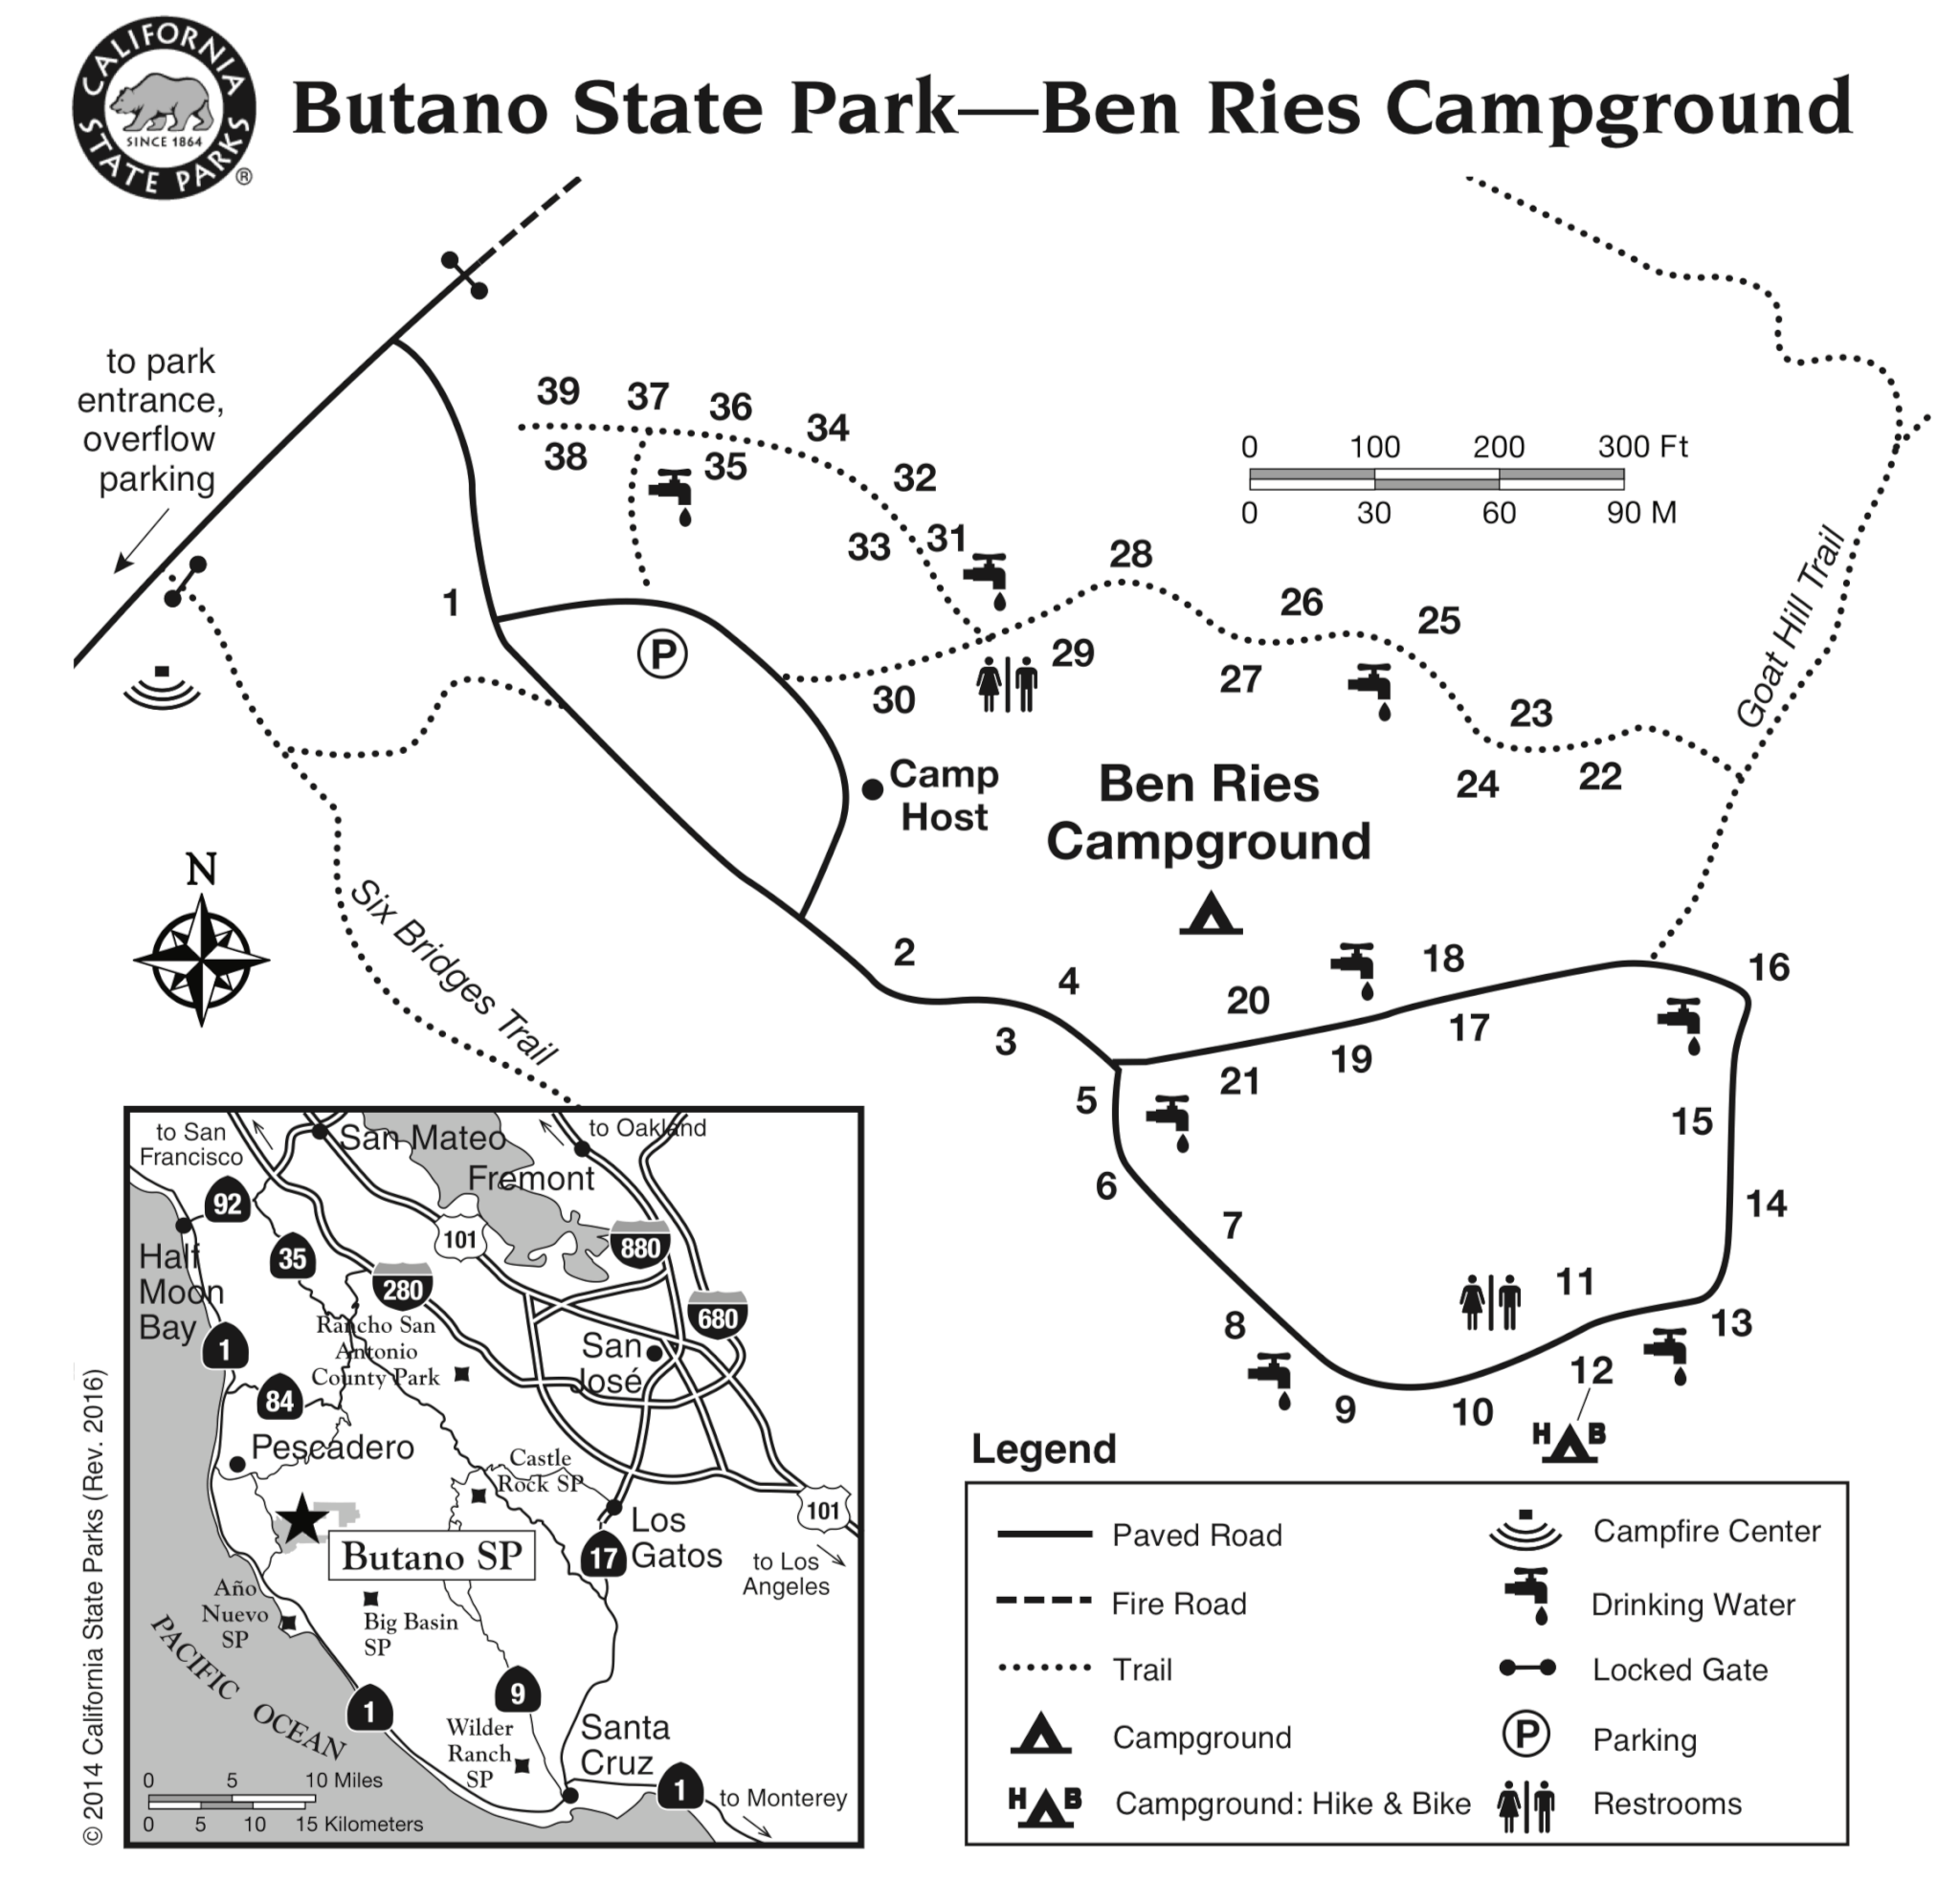 Butano State Park - Campsite Photos, Campground Info & Reservations